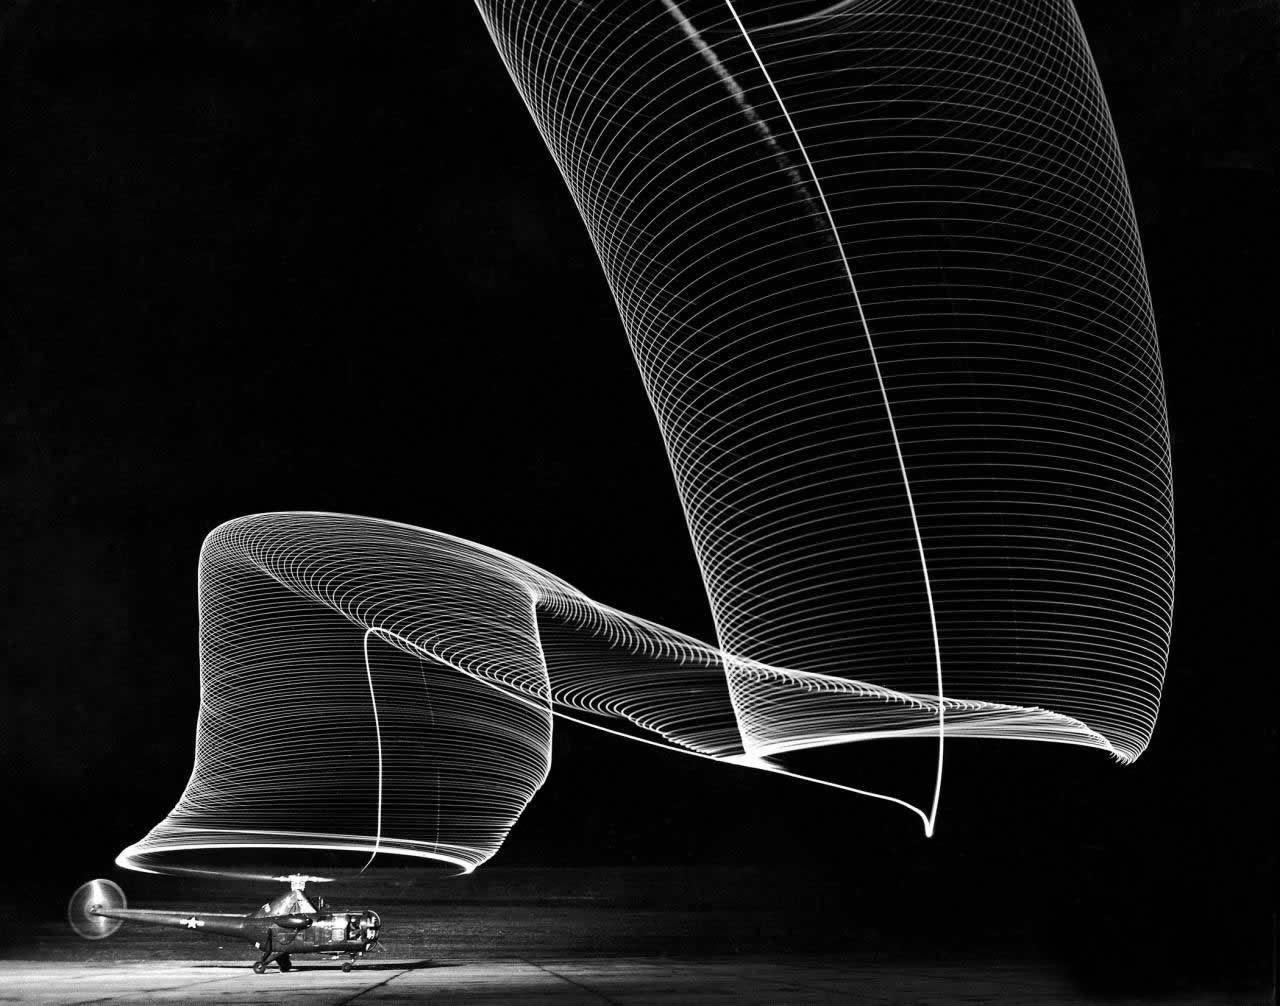 thumb-Andreas-Feininger-Nighttime-Long-Exposures-of-Rotating-Helicopter-Blades-1949-Andreas-Feininger-.-Nighttime-Long-Exposures-of-Rotating-Helicopter-Blades-.-1949.jpg